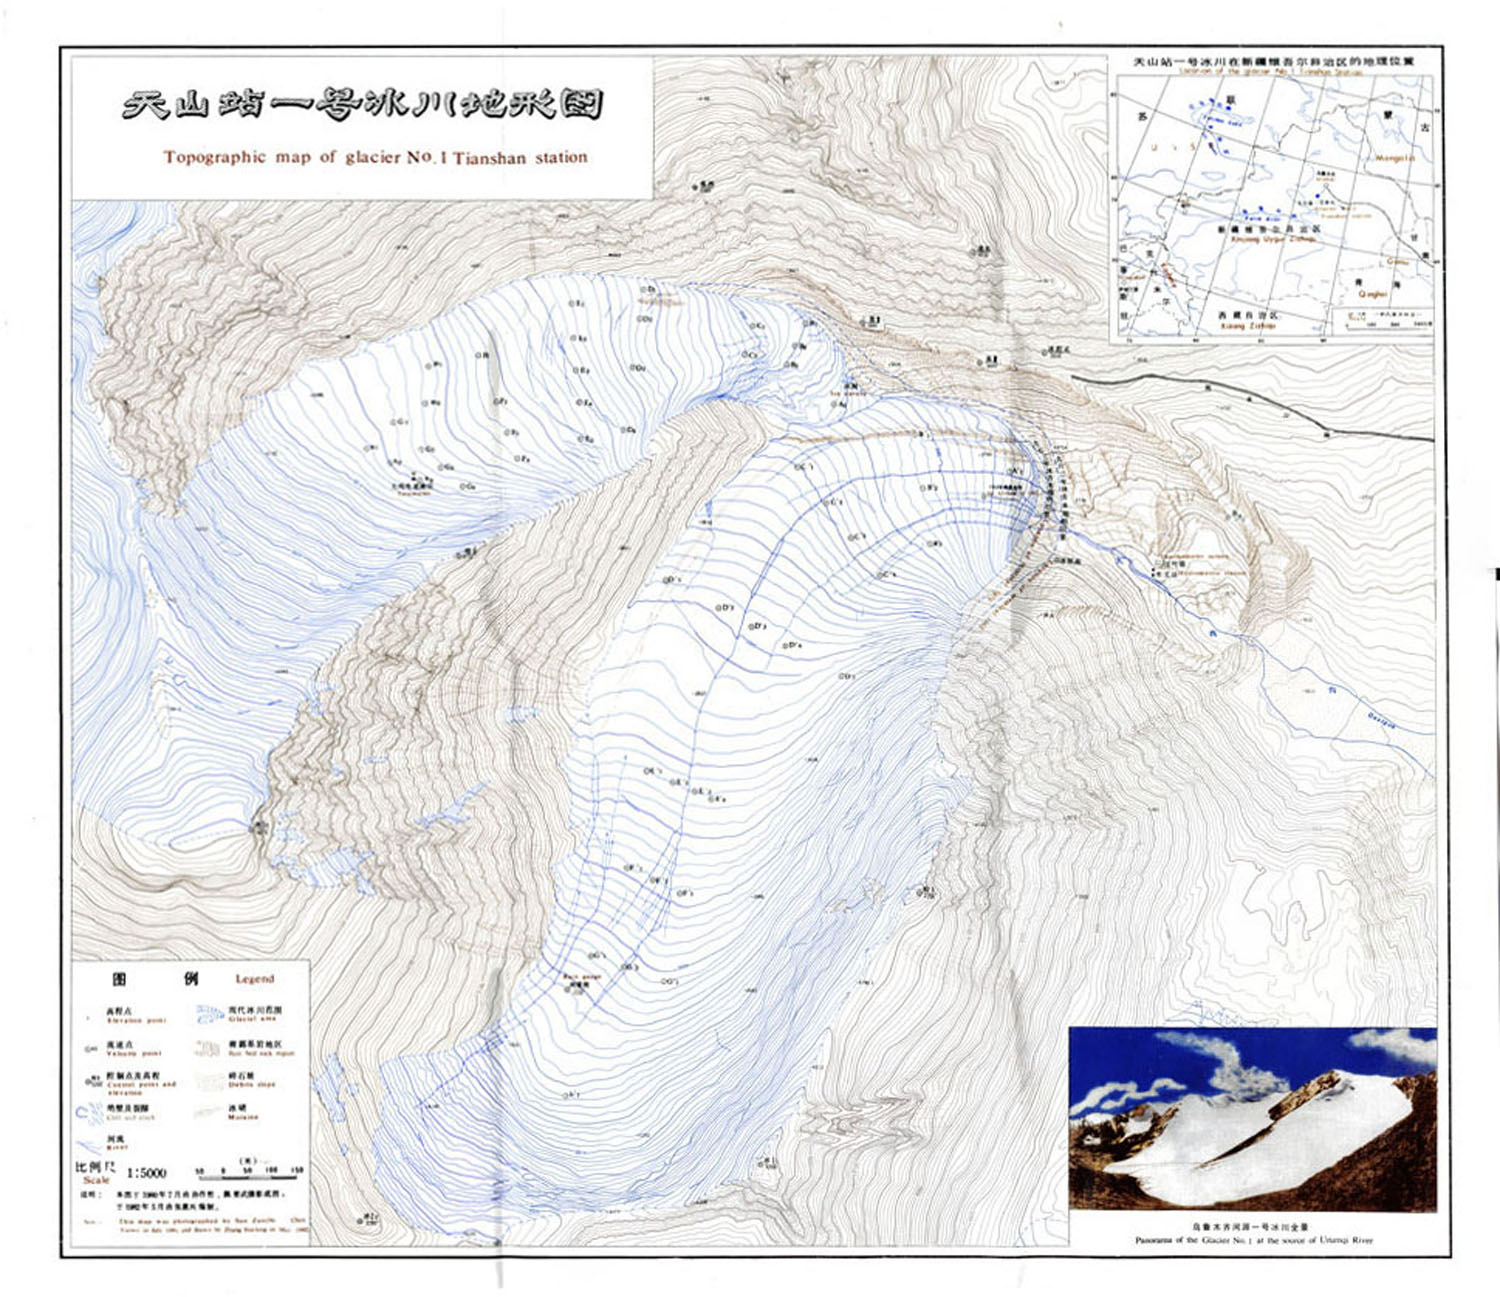 Fluctuations Of Glaciers Maps World Glacier Monitoring Service - Topographic map of austria 2008